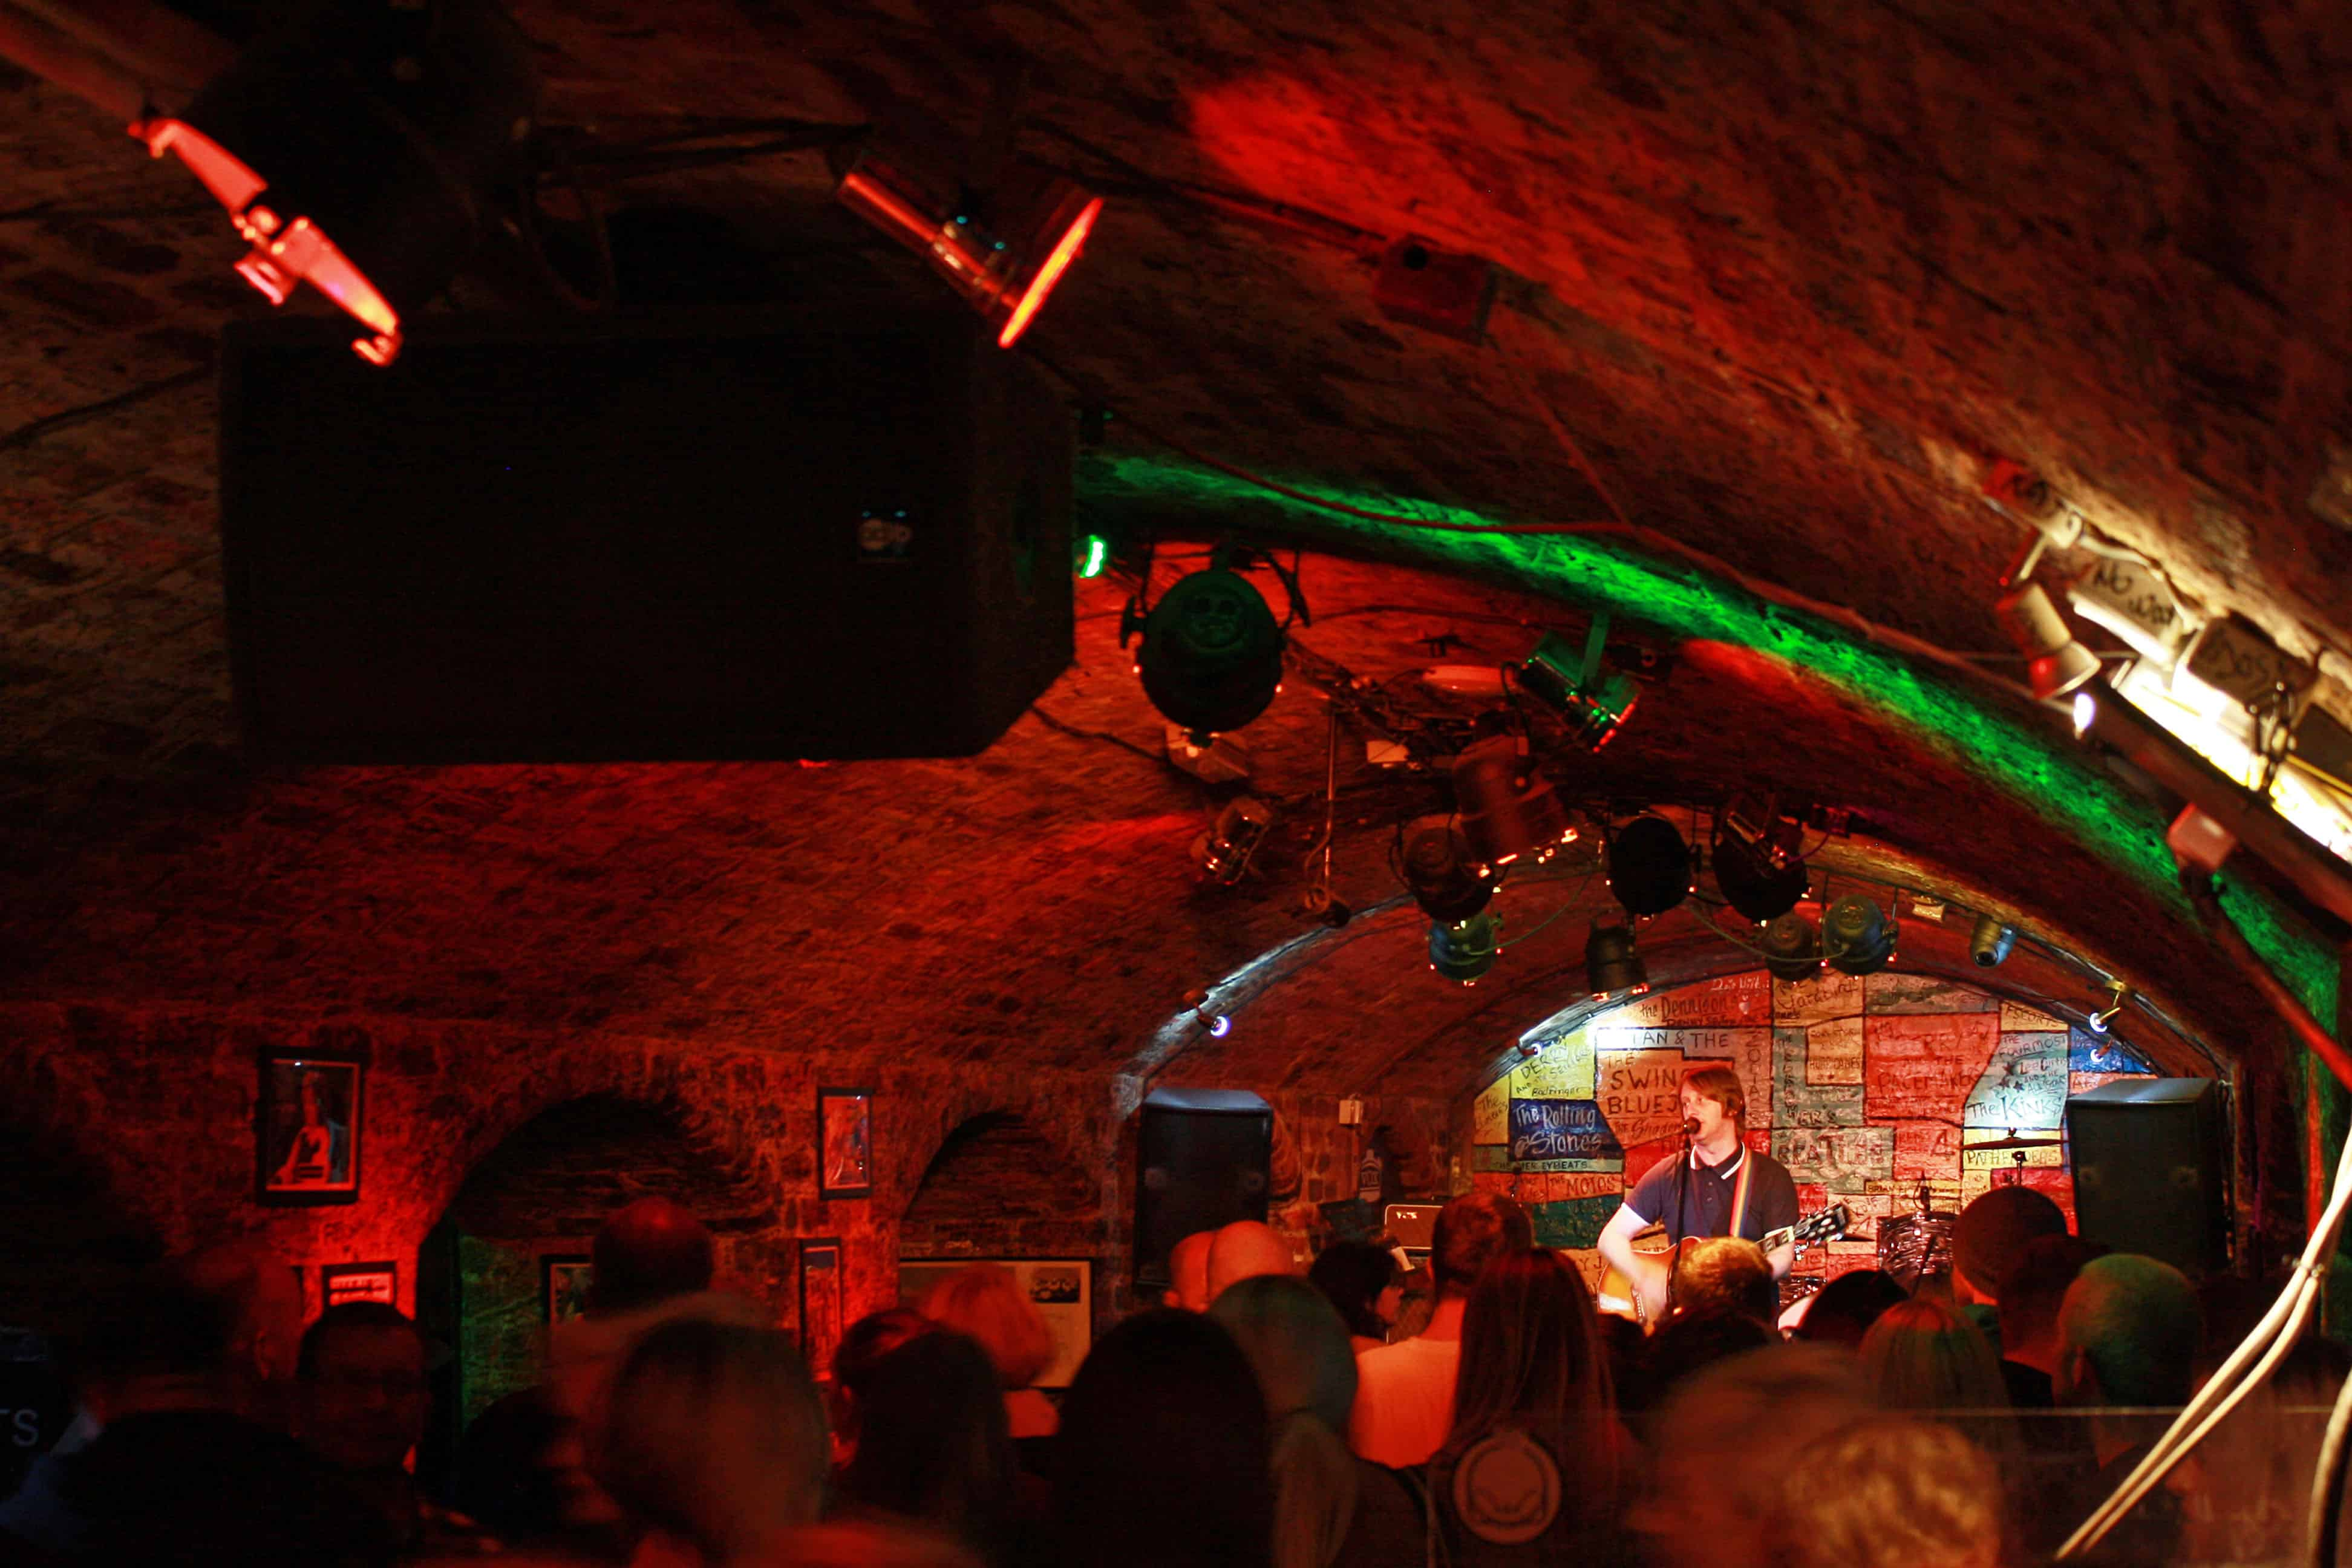 The Cavern Club music